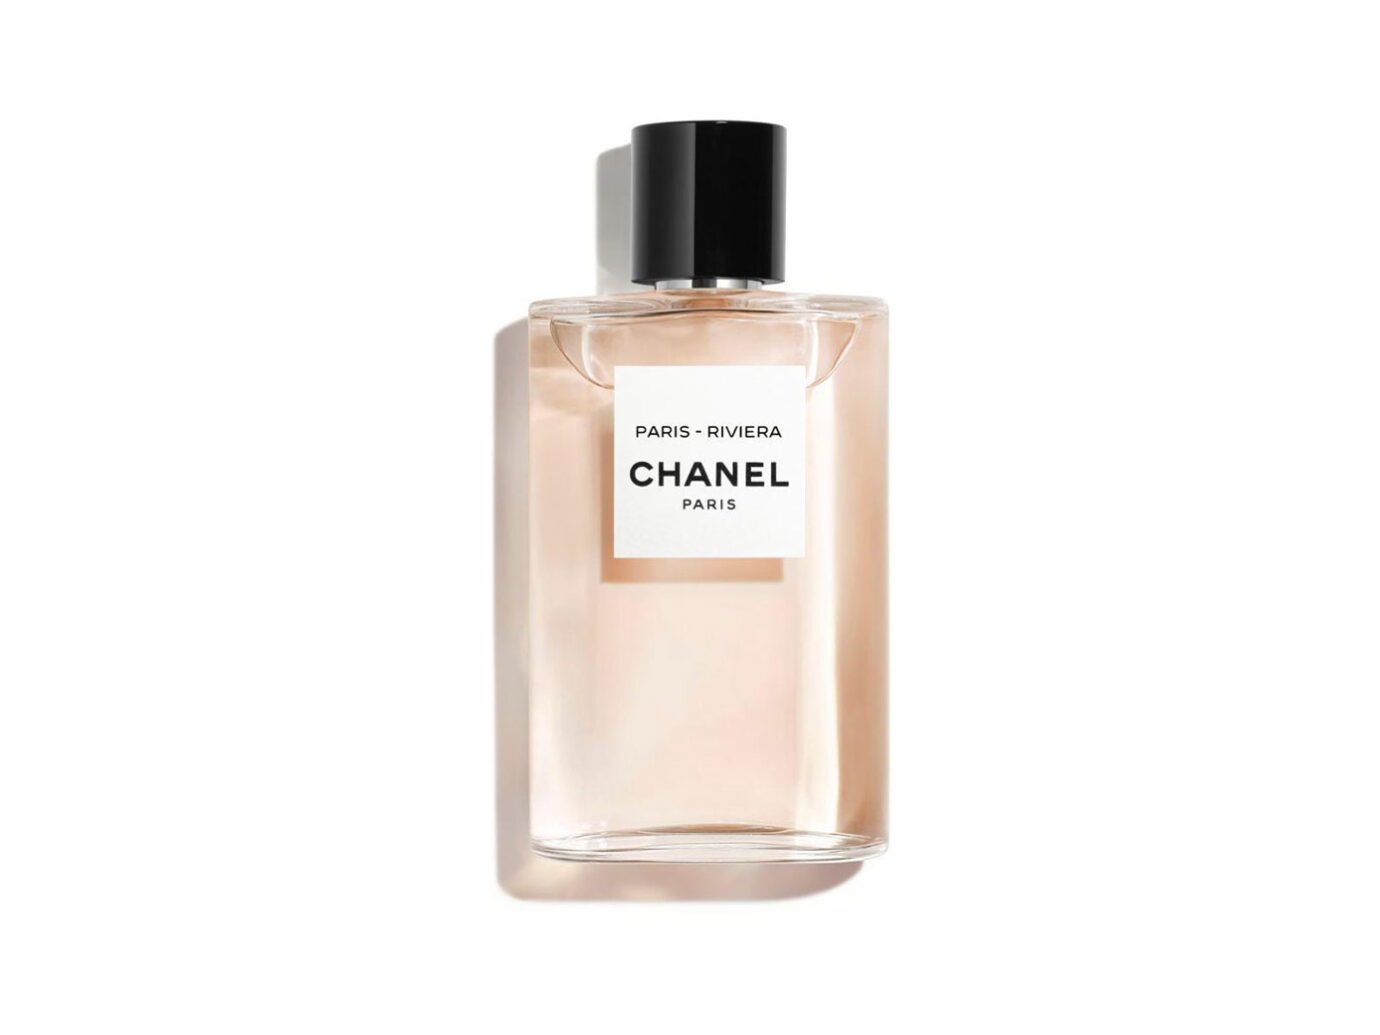 CHANEL PARIS-RIVIERA Eau de Toilette, Main, color, NO COLOR (9) CHANEL LES EAUX DE CHANEL PARIS-RIVIERA EAU DE TOILETTE